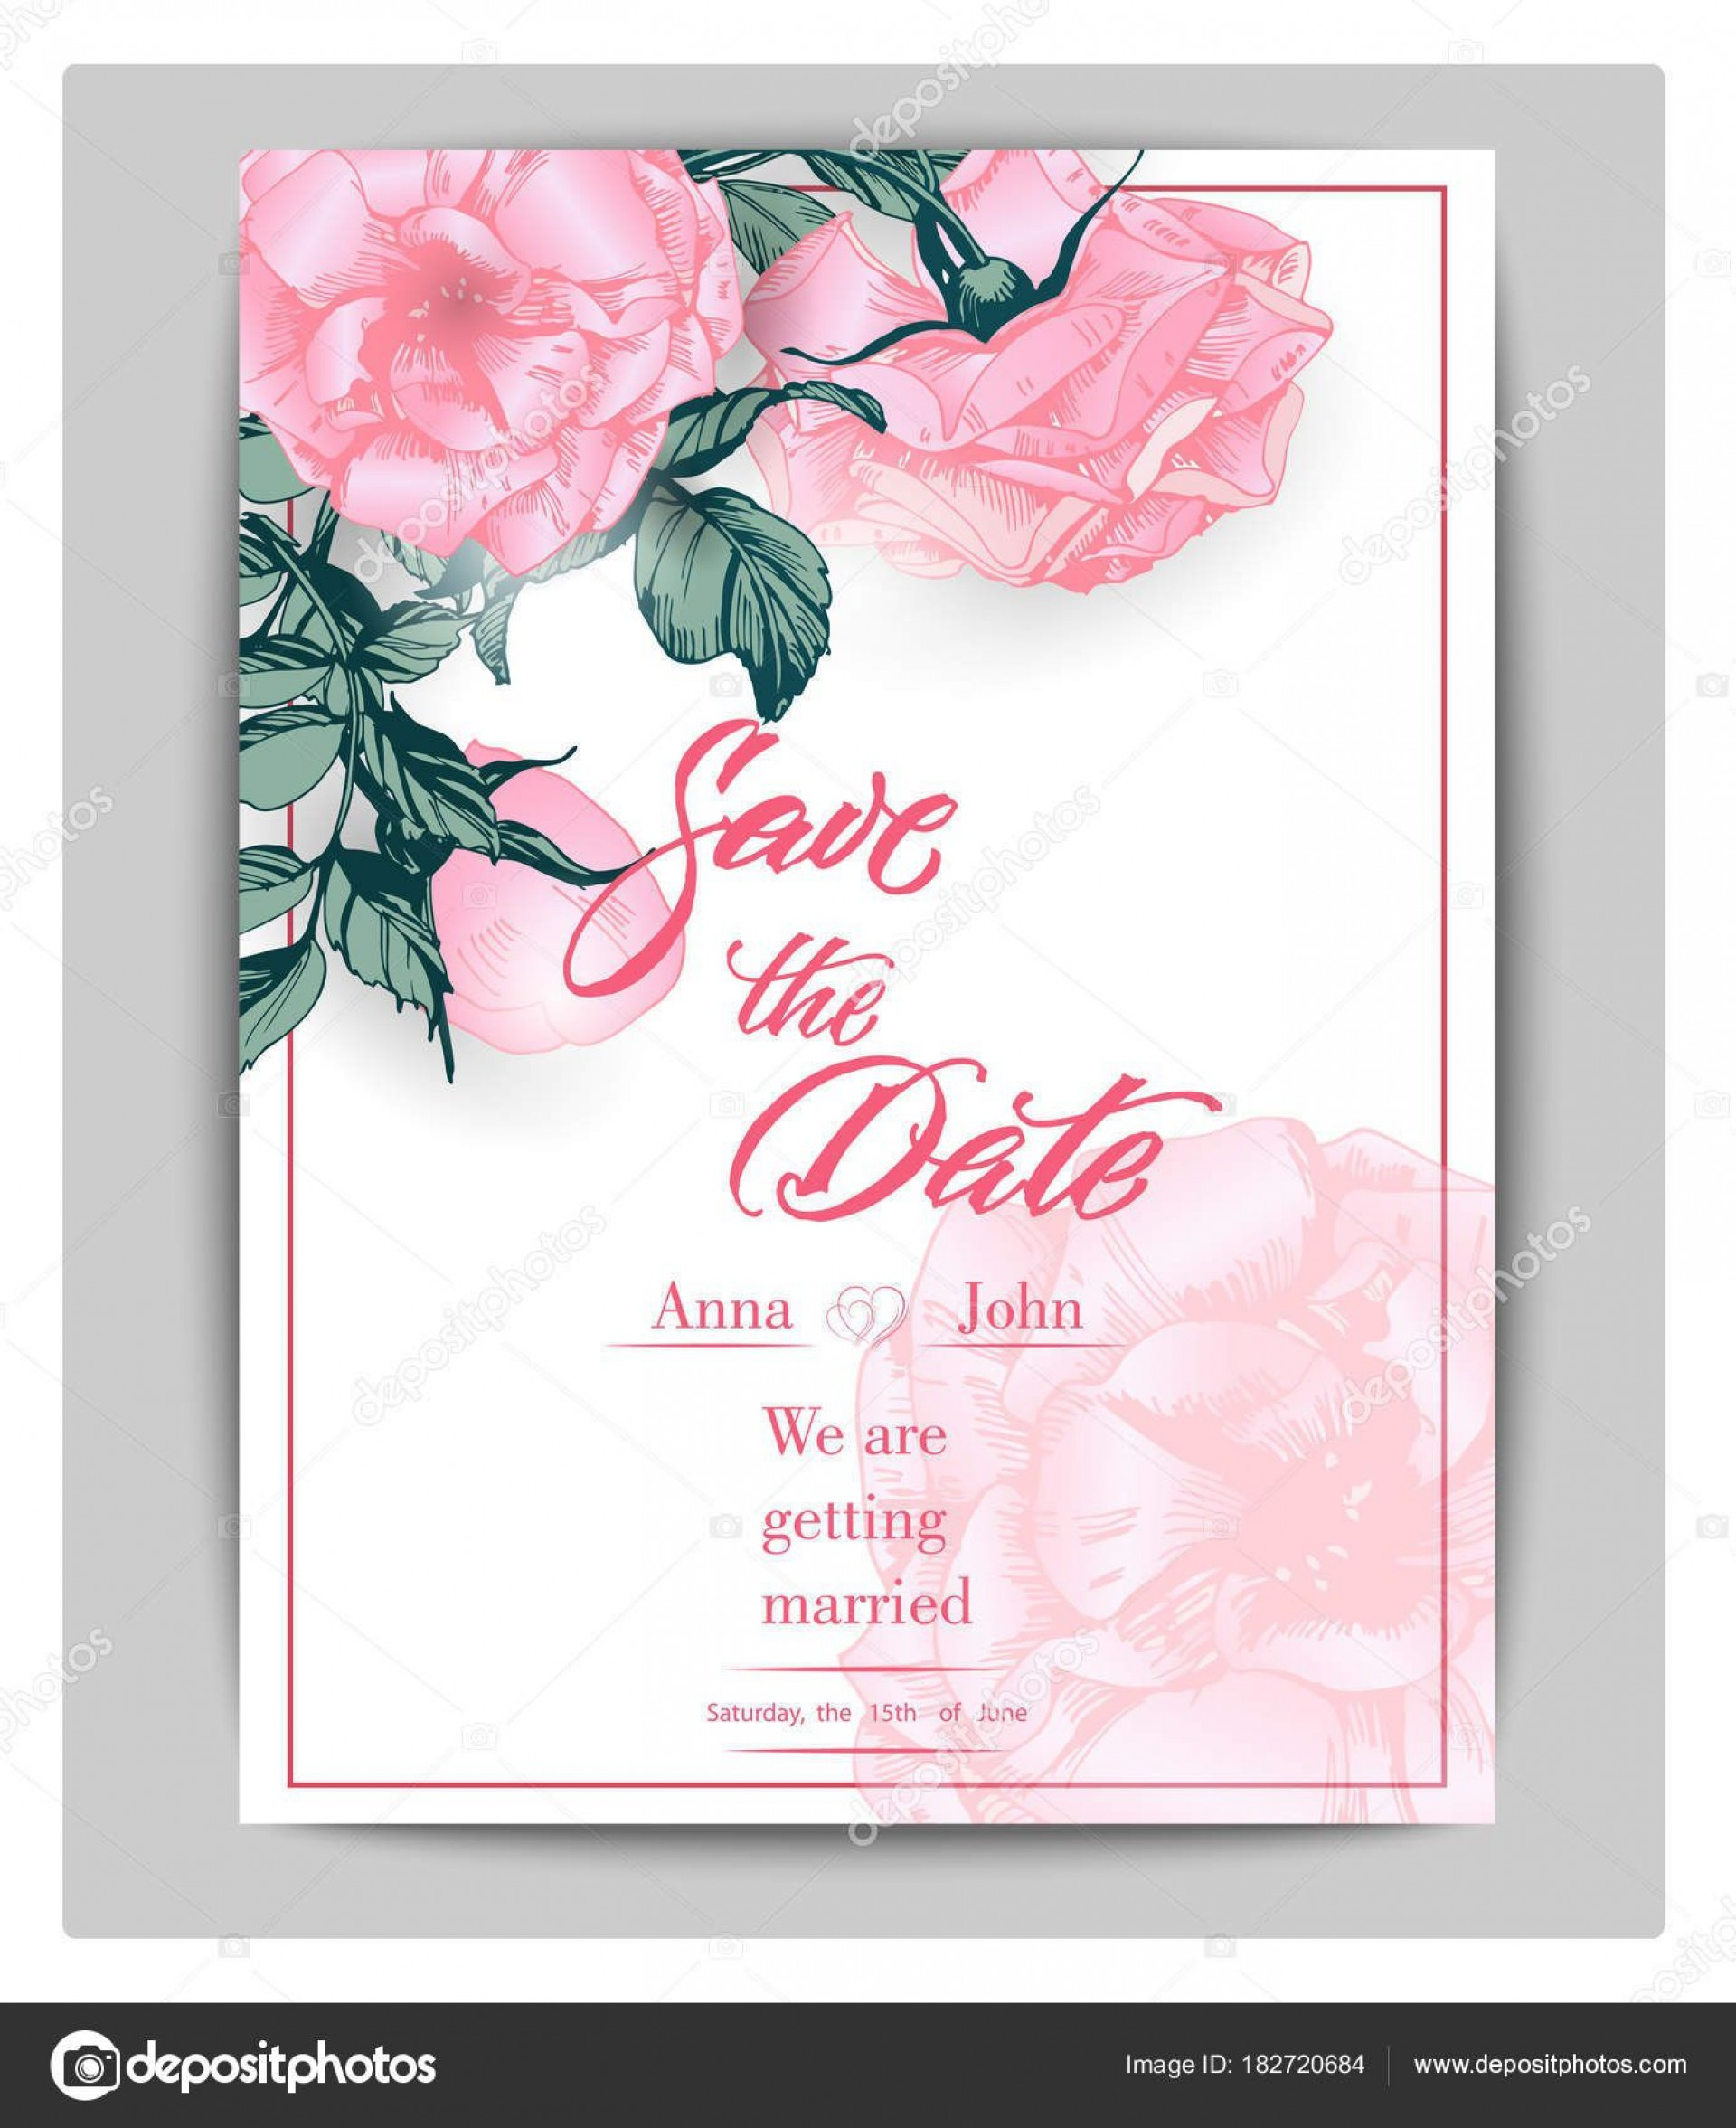 006 Top Save The Date Birthday Card Template High Resolution  Free Printable1920